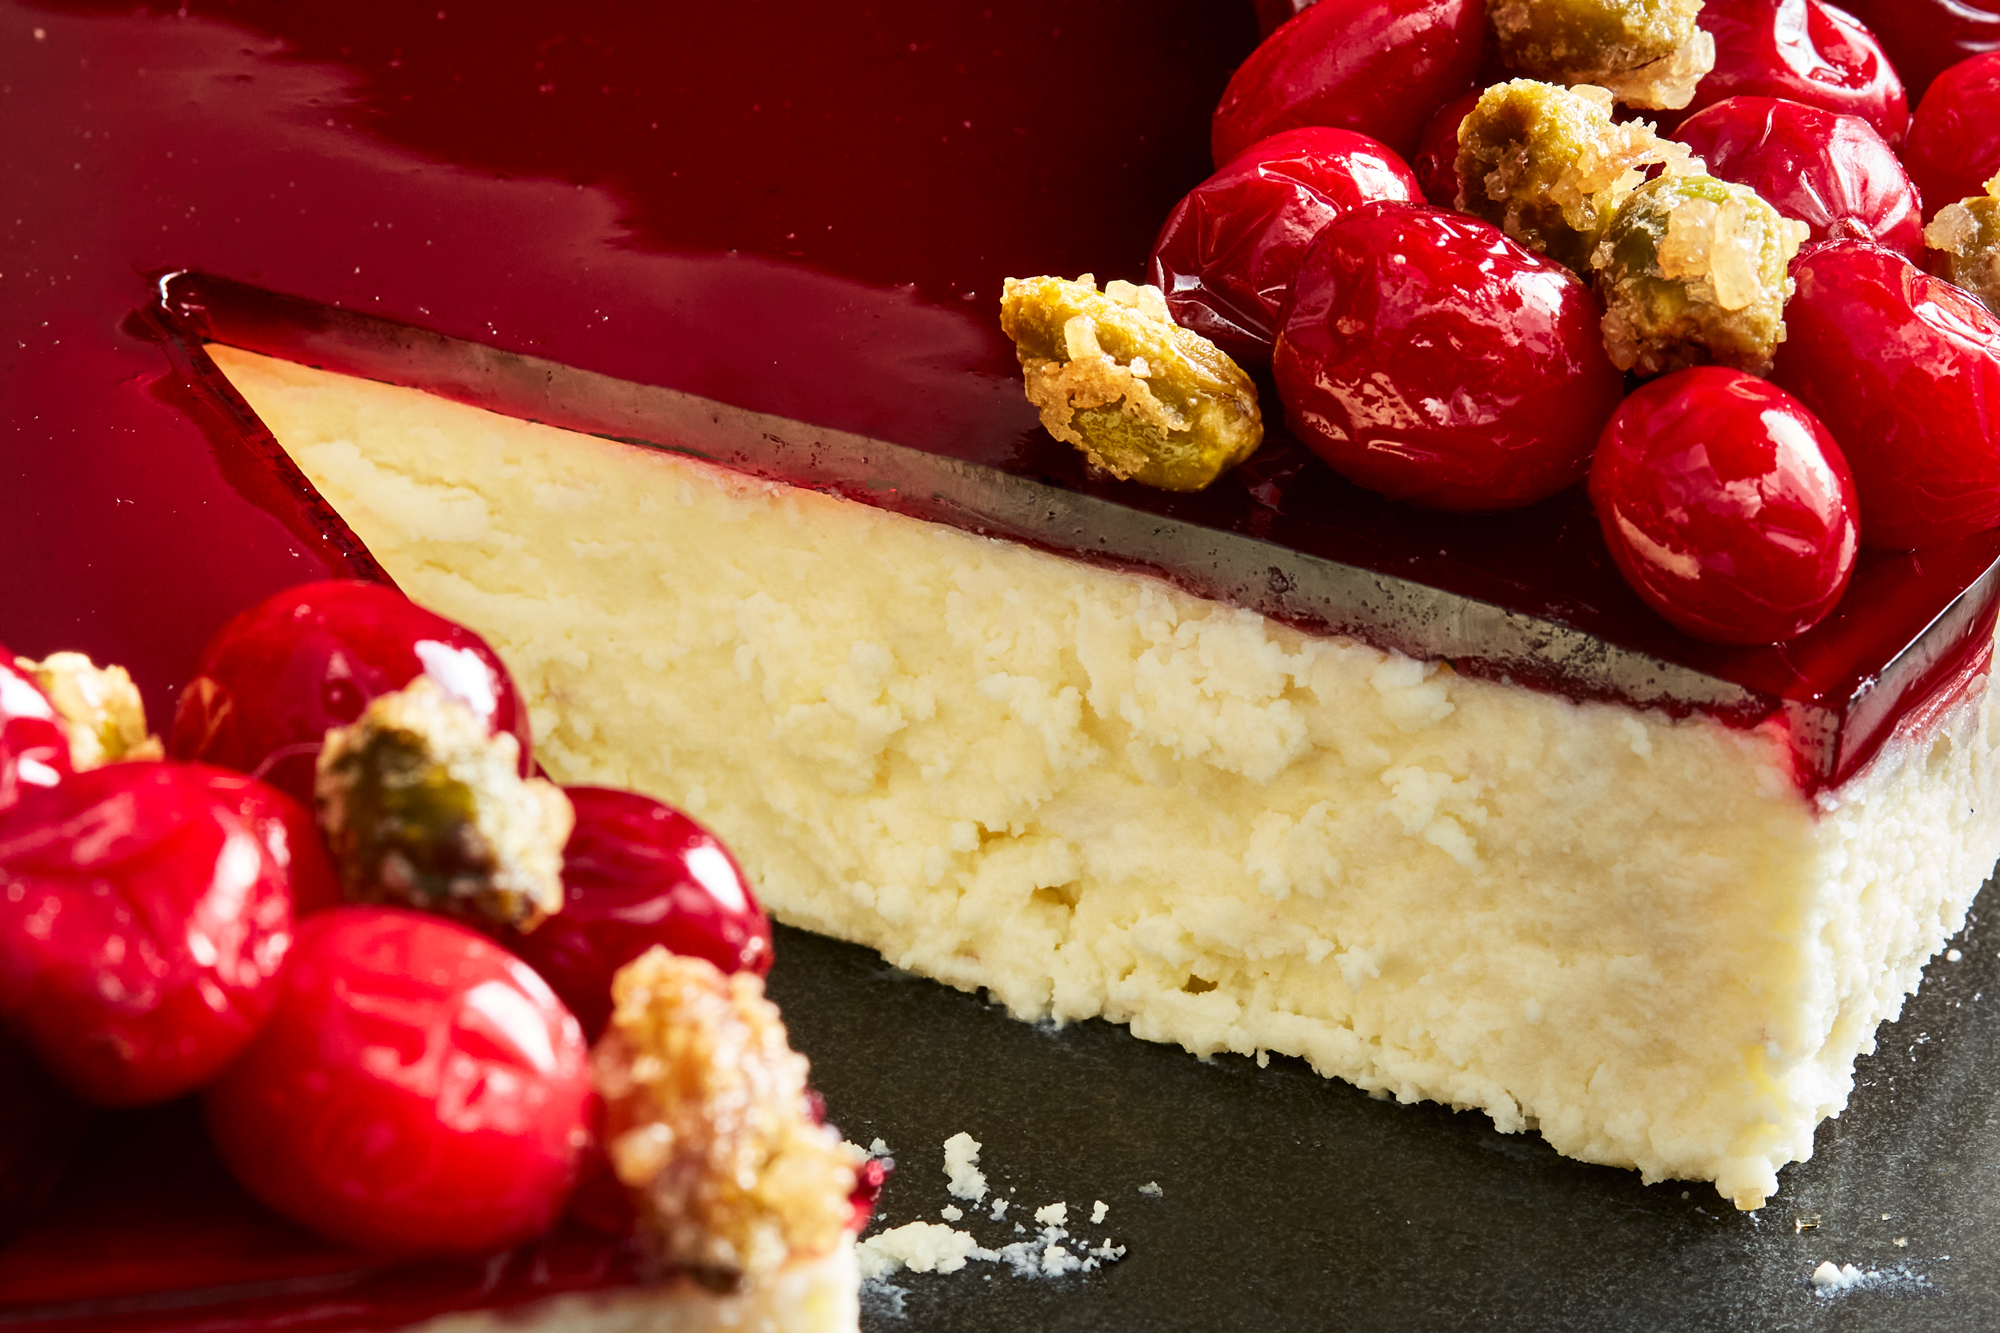 Goat cheese cake with red wine poached cranberries